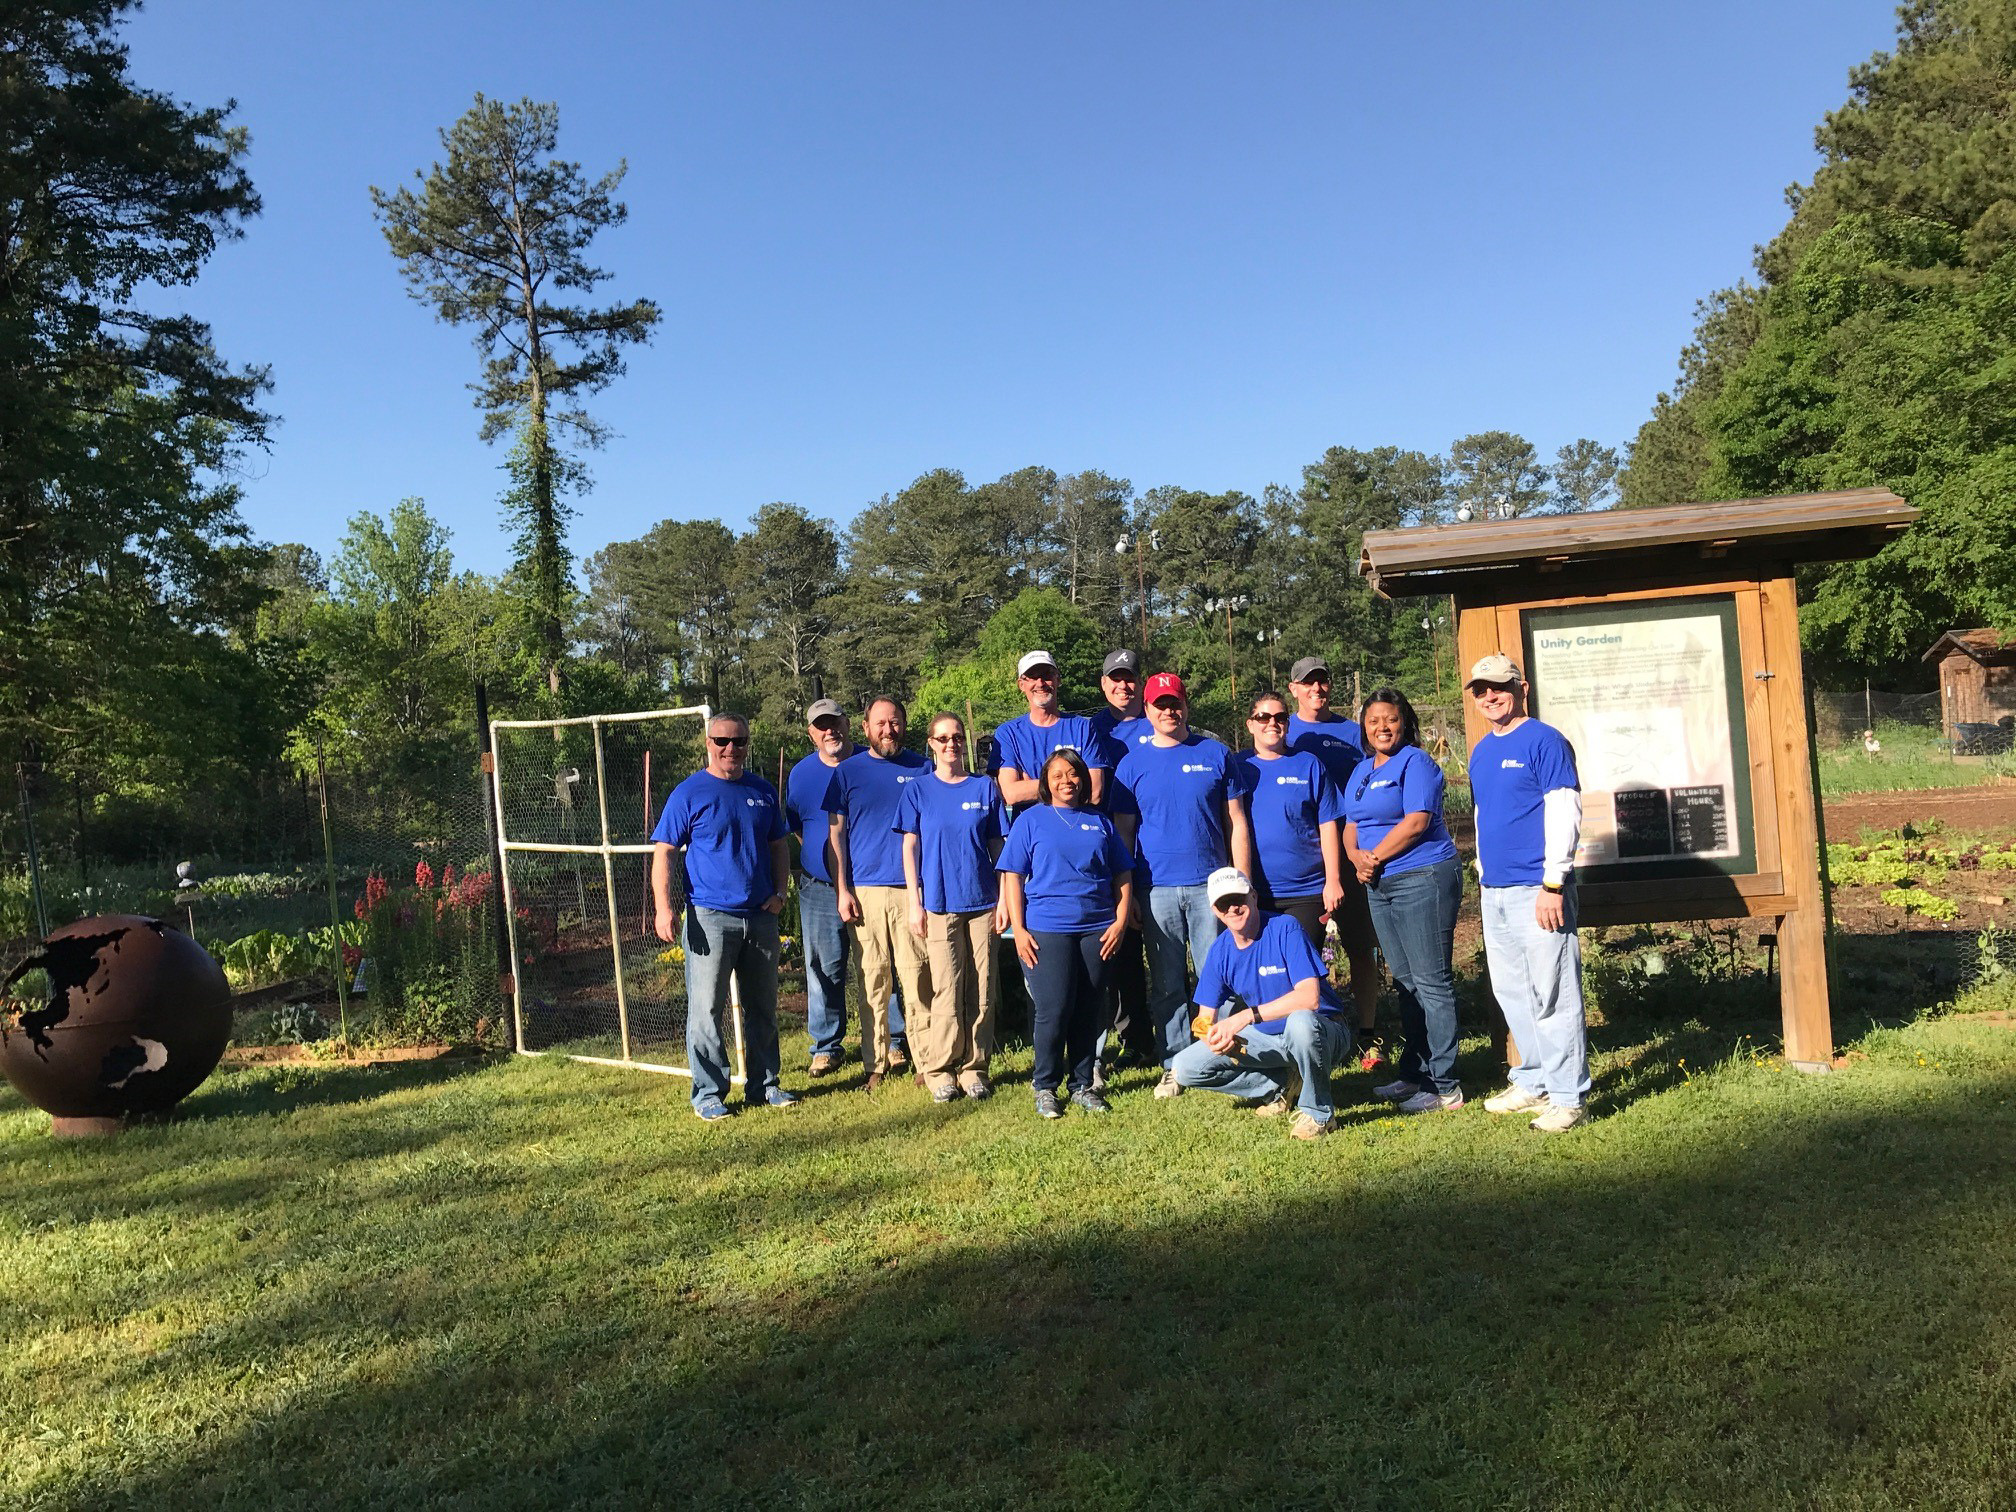 04-26-17 Service Day at Chattahoochee Nature_edited.jpg